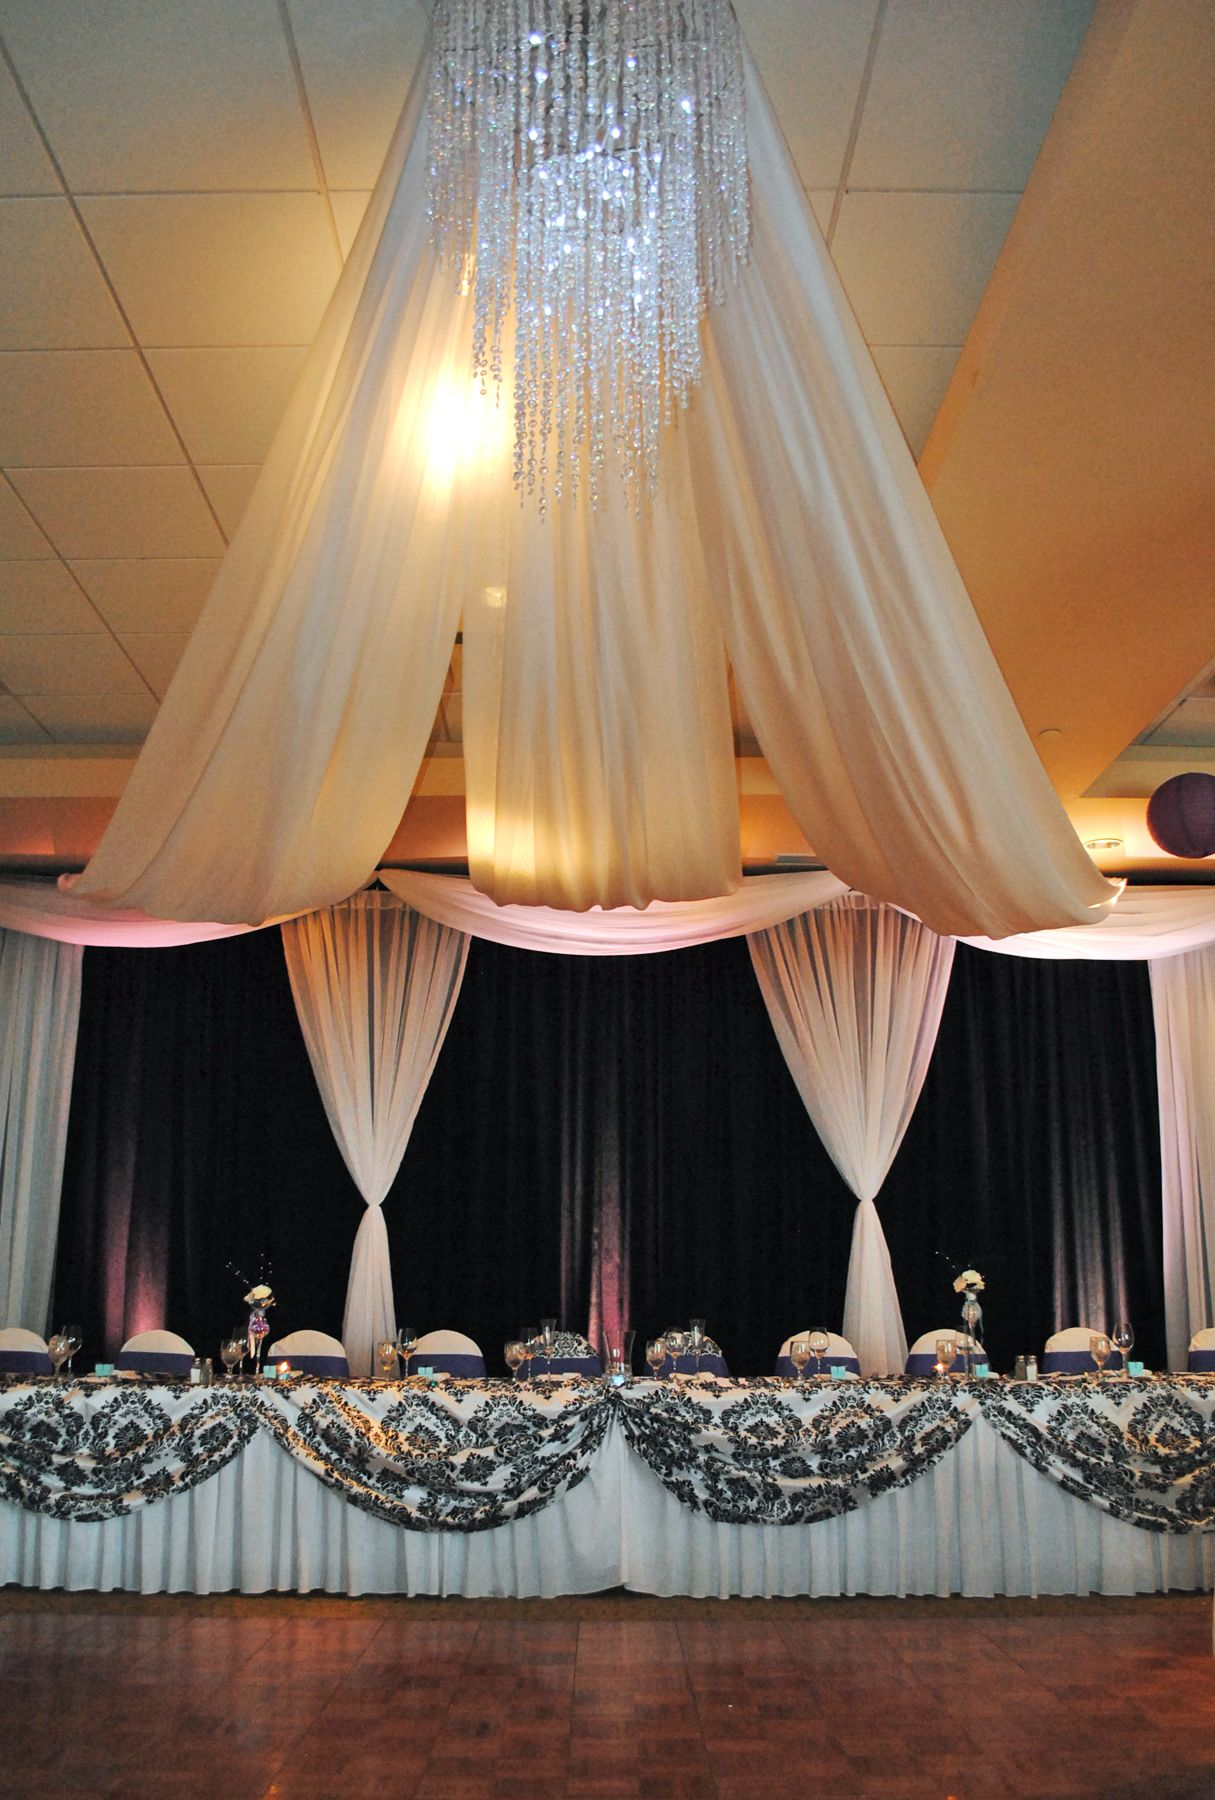 events romance inside weddings of your decorations to how event drapes add elegant hang for ceiling lovely wedding hanging